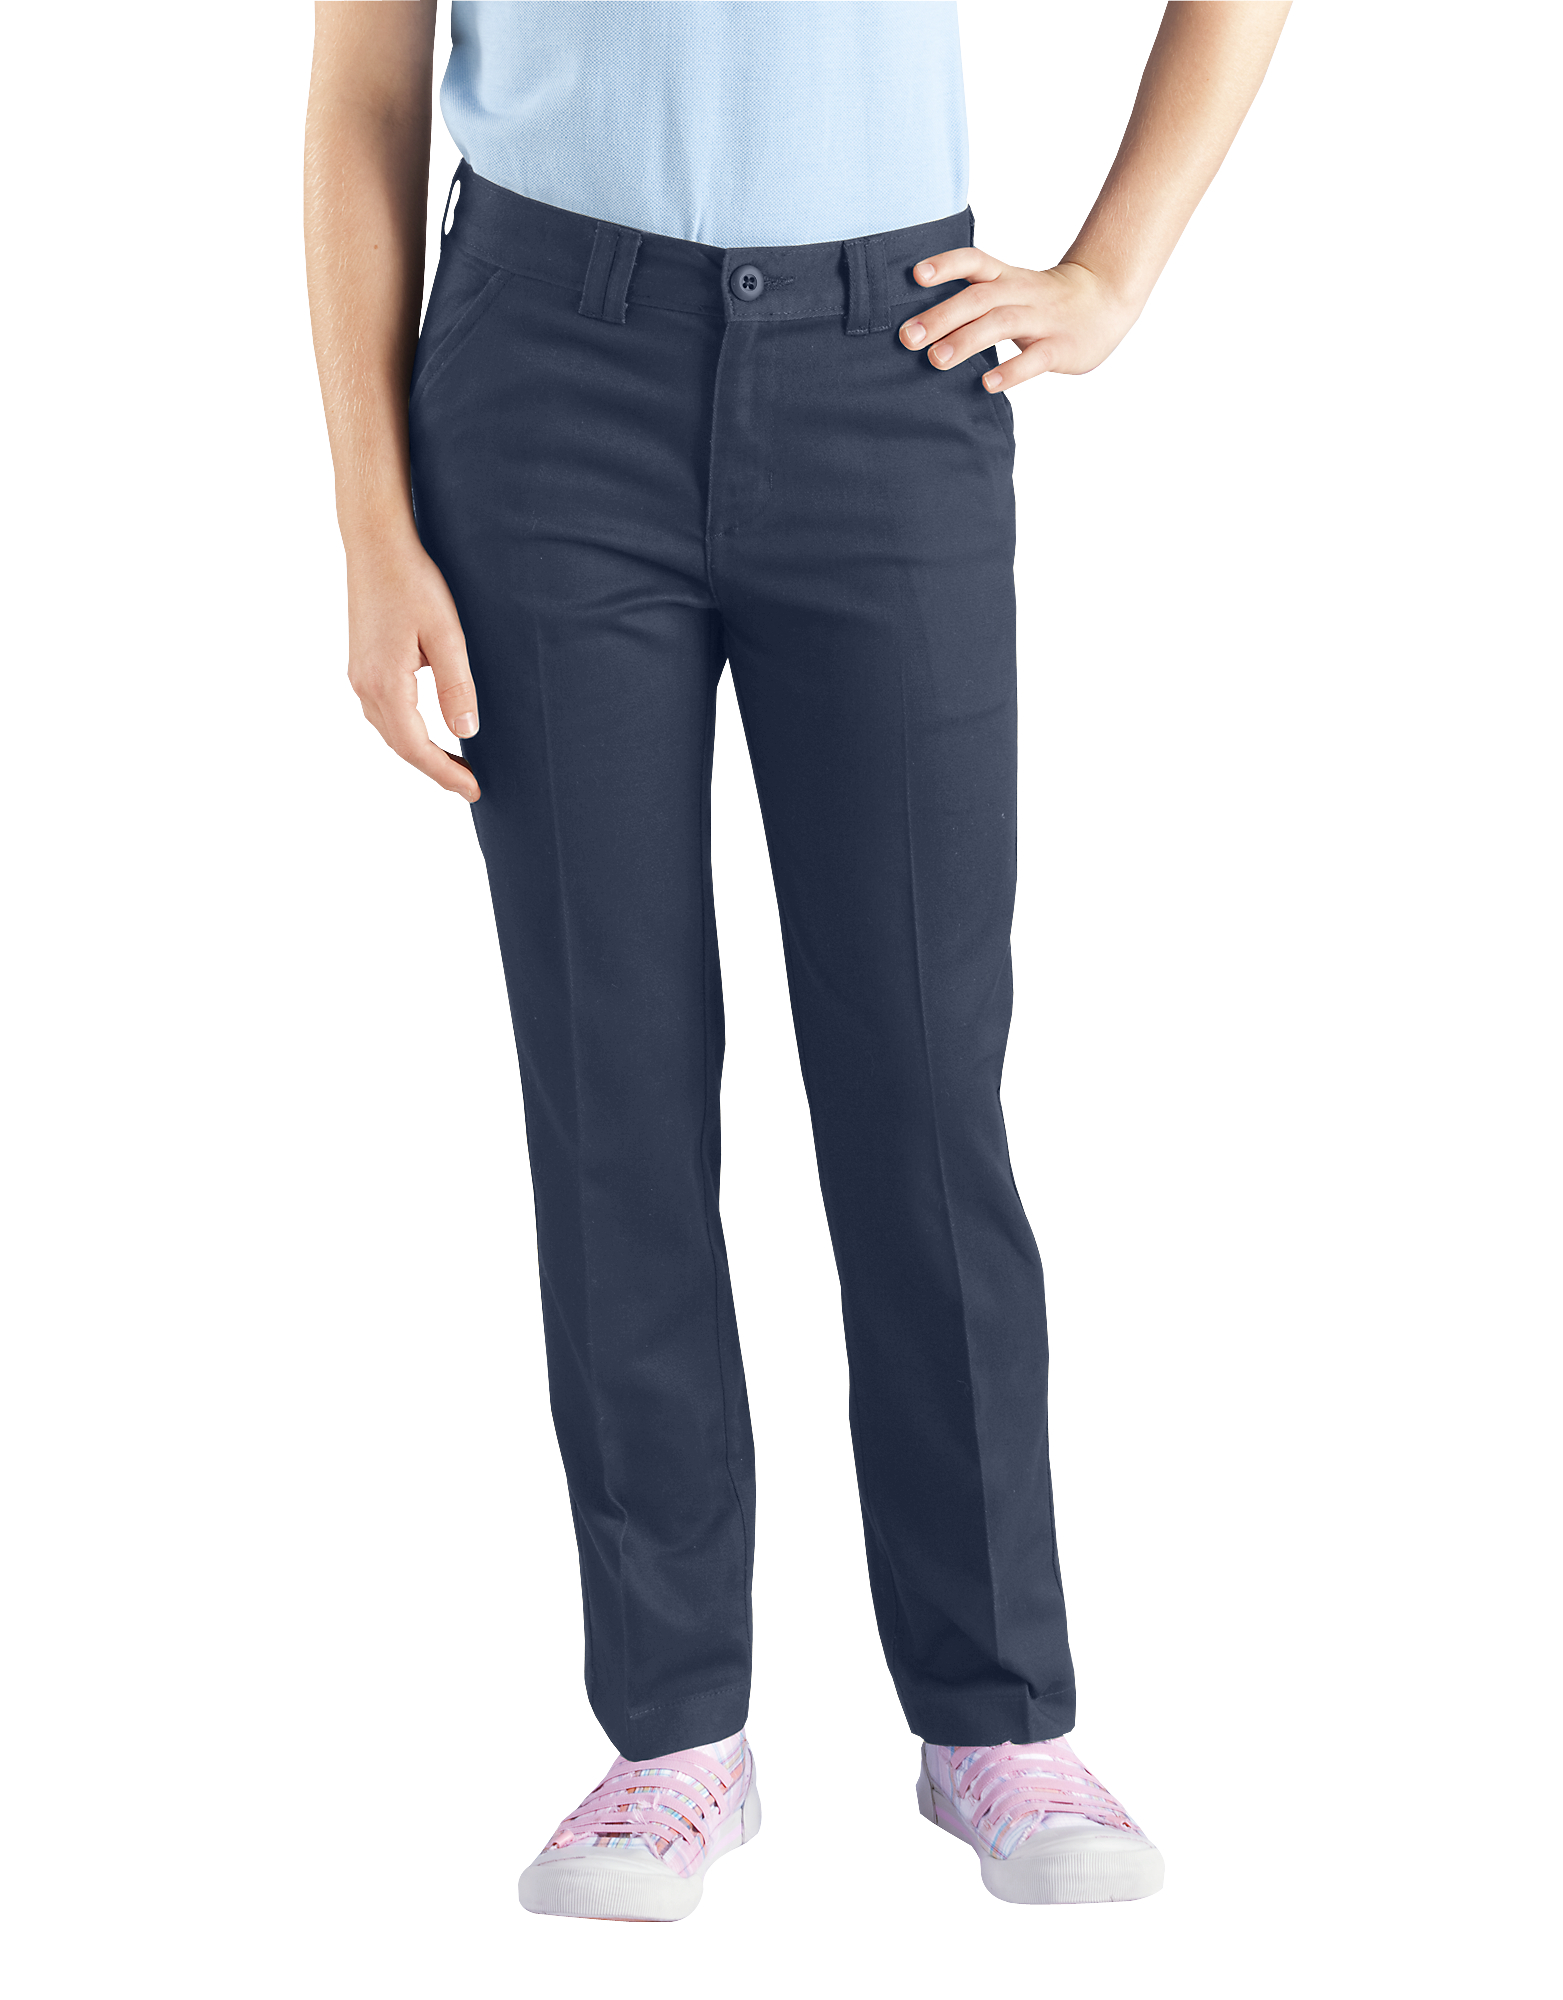 Girls' Skinny Fit Straight Leg Stretch Twill Pants, 7-20 - Dark Navy (DN)